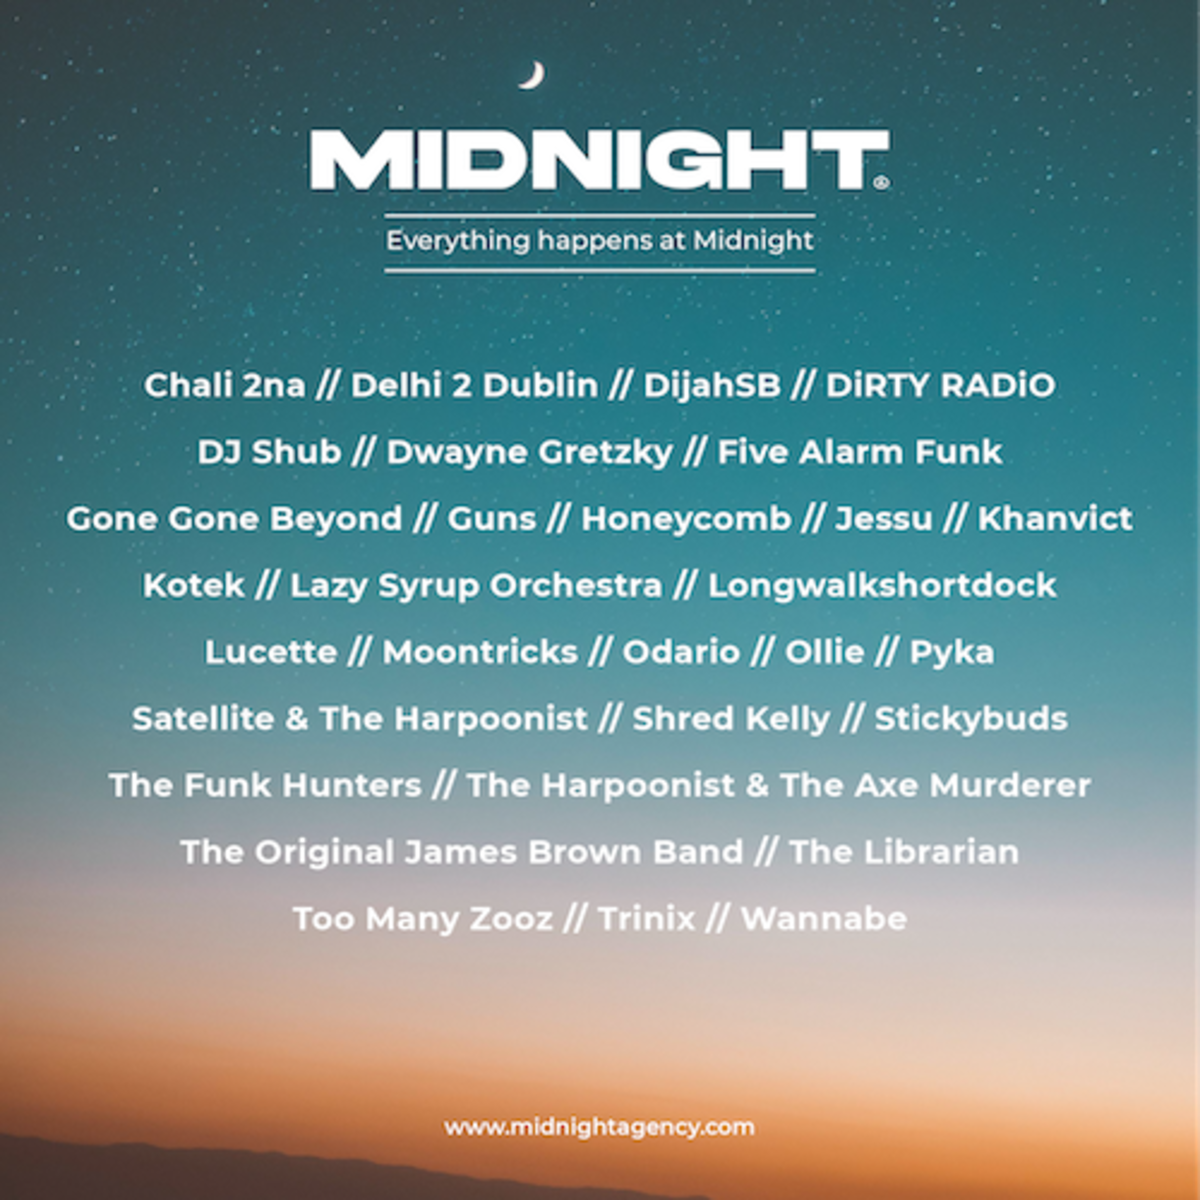 Midnight Agency's full roster at launch on April 6th, 2021